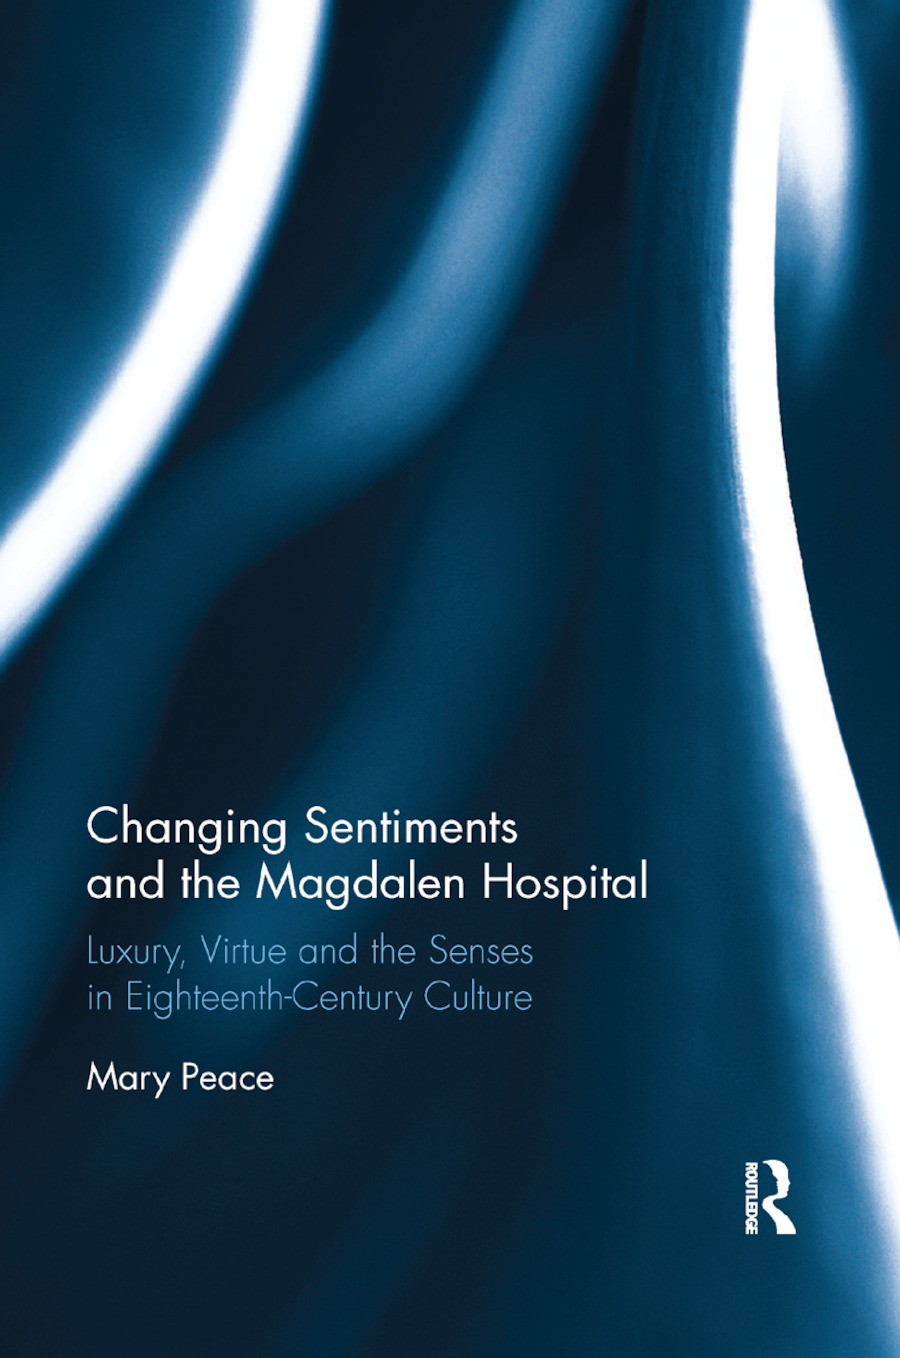 Changing Sentiments and the Magdalen Hospital: Luxury, Virtue and the Senses in Eighteenth-Century Culture book cover